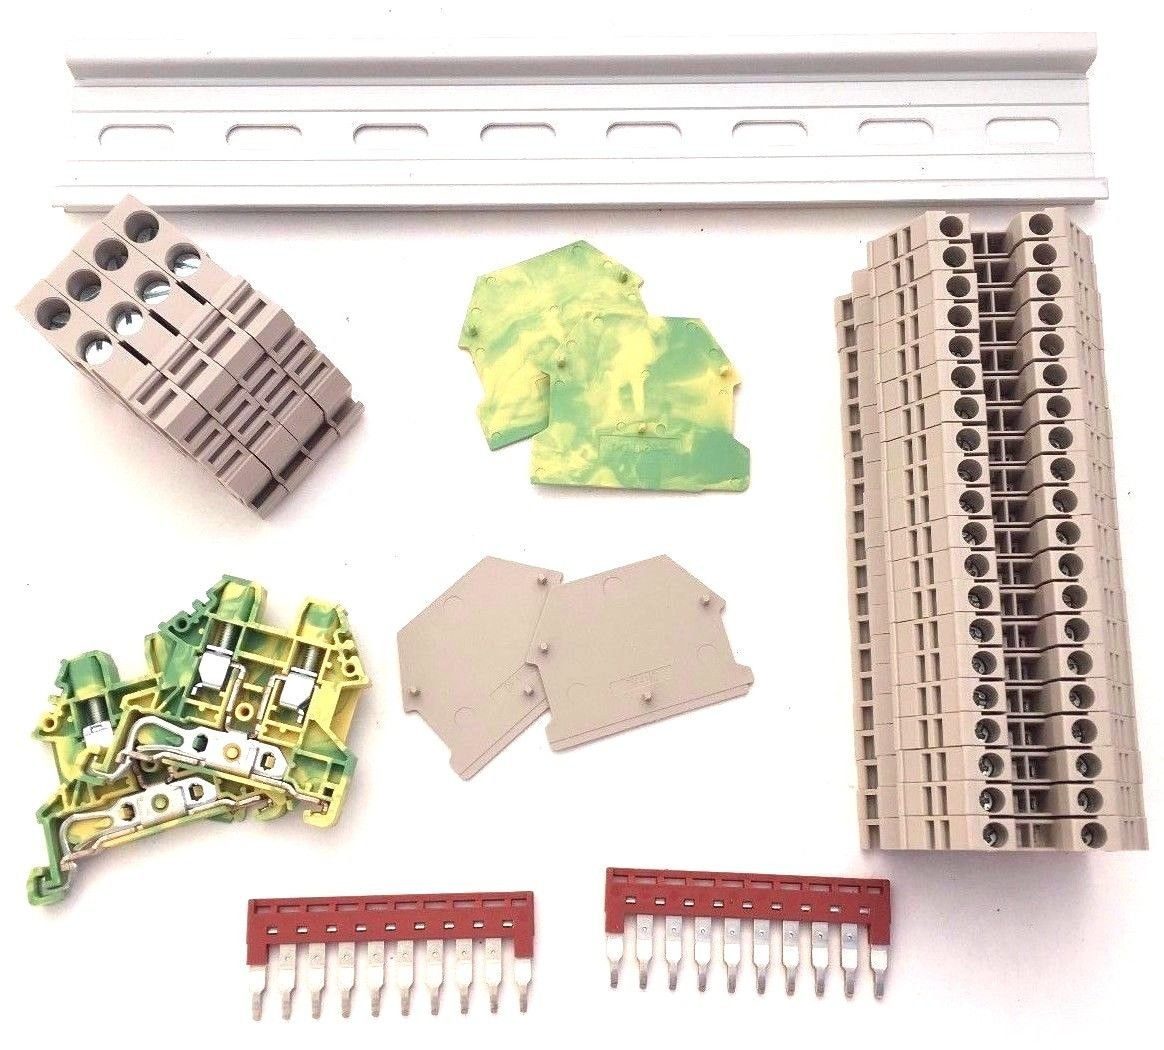 UL Listed DIN Rail Terminal Block Kit #1 Dinkle 20 DK2 5N 12 AWG Gauge 20A  600V Ground DK4N-PE Jumper DSS2 5N-10P End Covers End Brackets